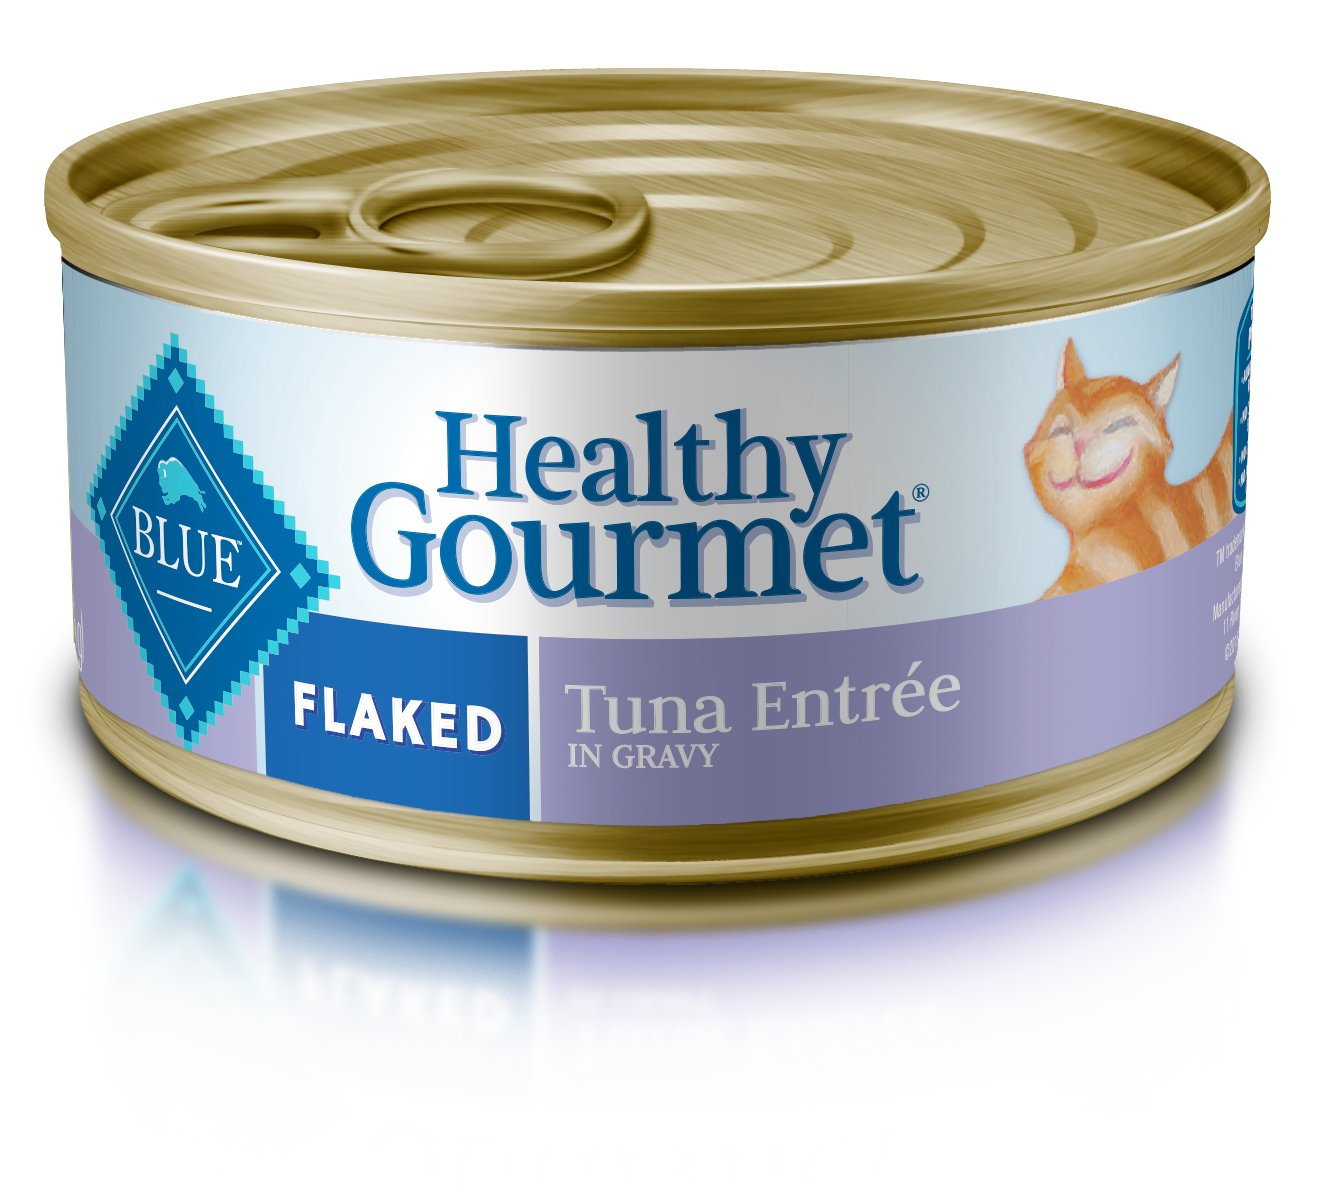 bluee Buffalo bluee Healthy Gourmet Adult Flaked Tuna Wet Cat Food 5.5-oz (Pack of 24)